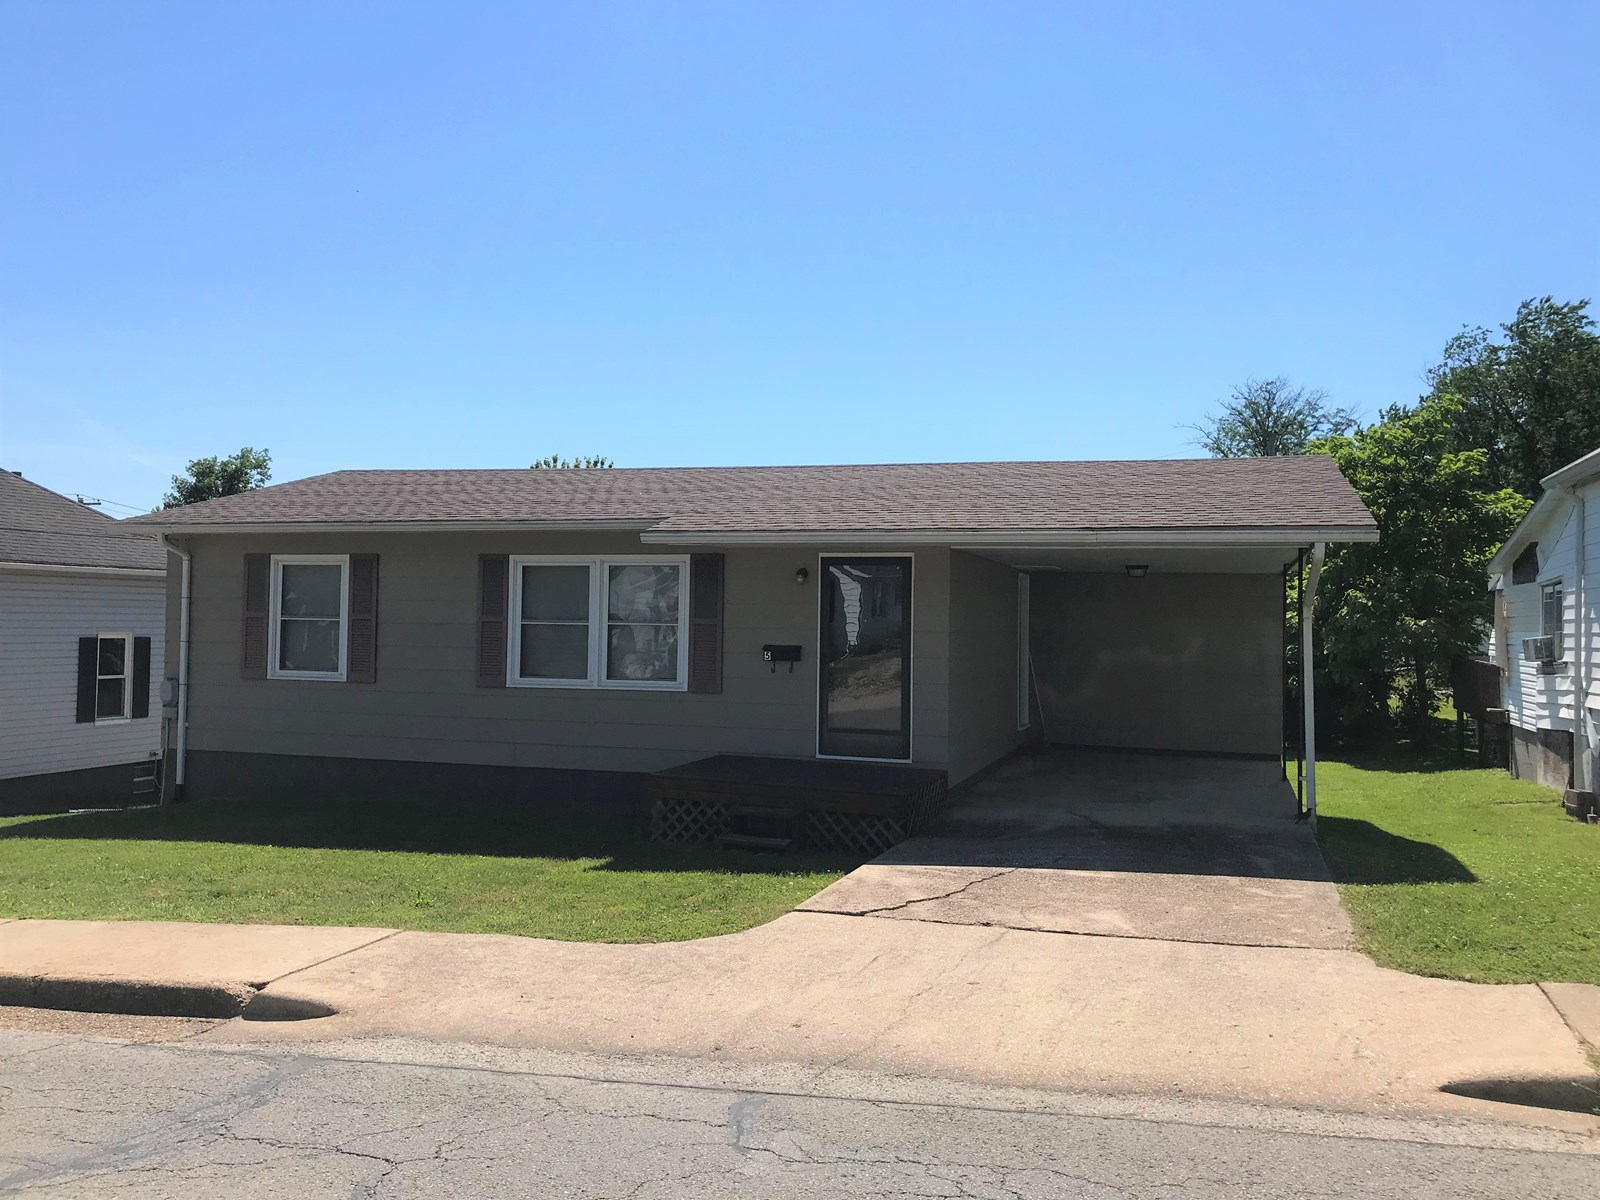 2 bedroom 1 bath home great for investment or first home